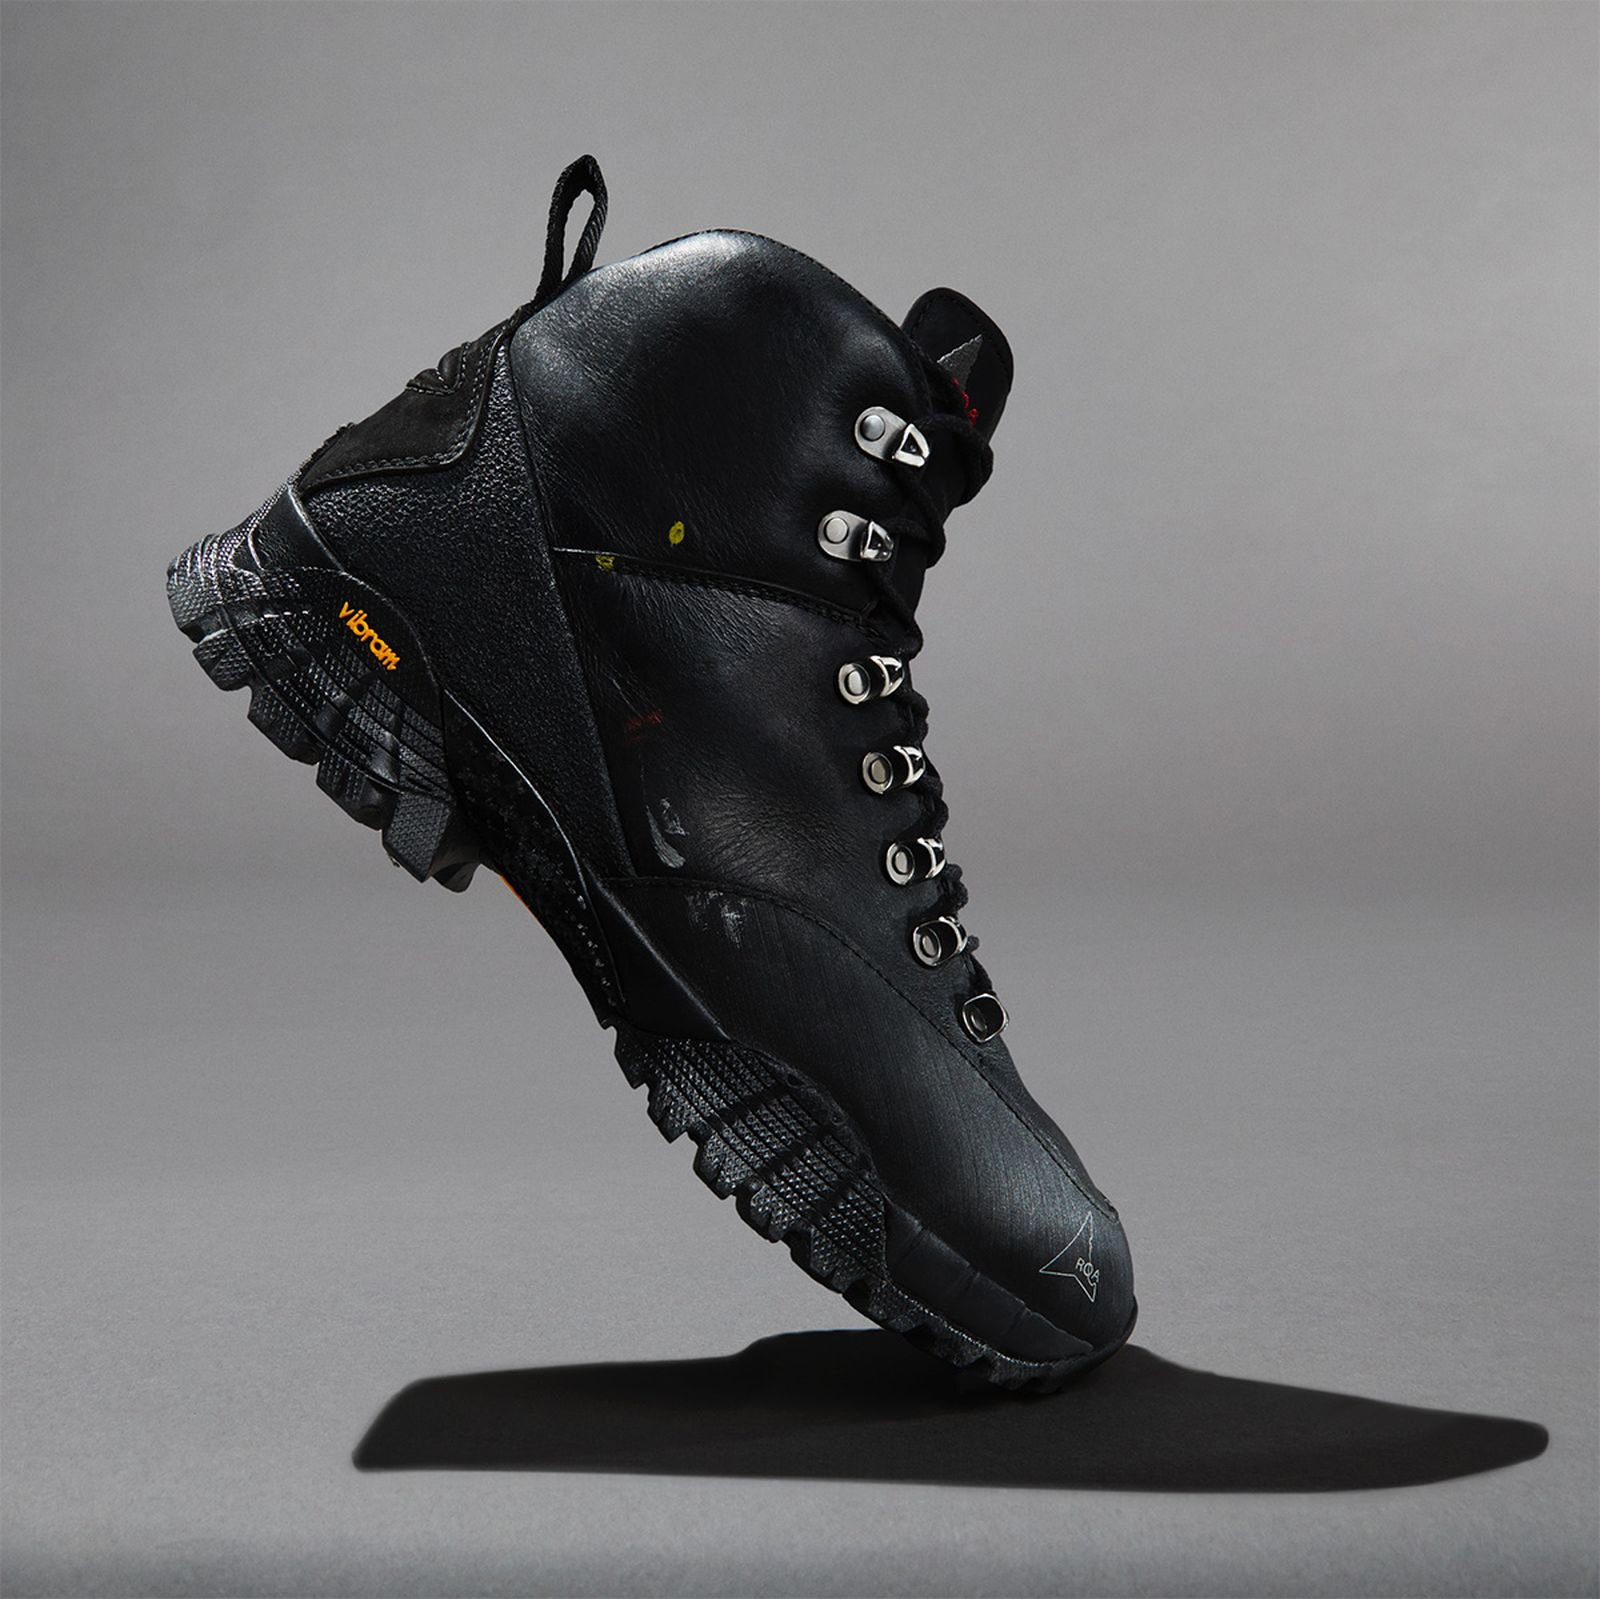 05tested-5-trekking-boots-find-best-outdoors-style-